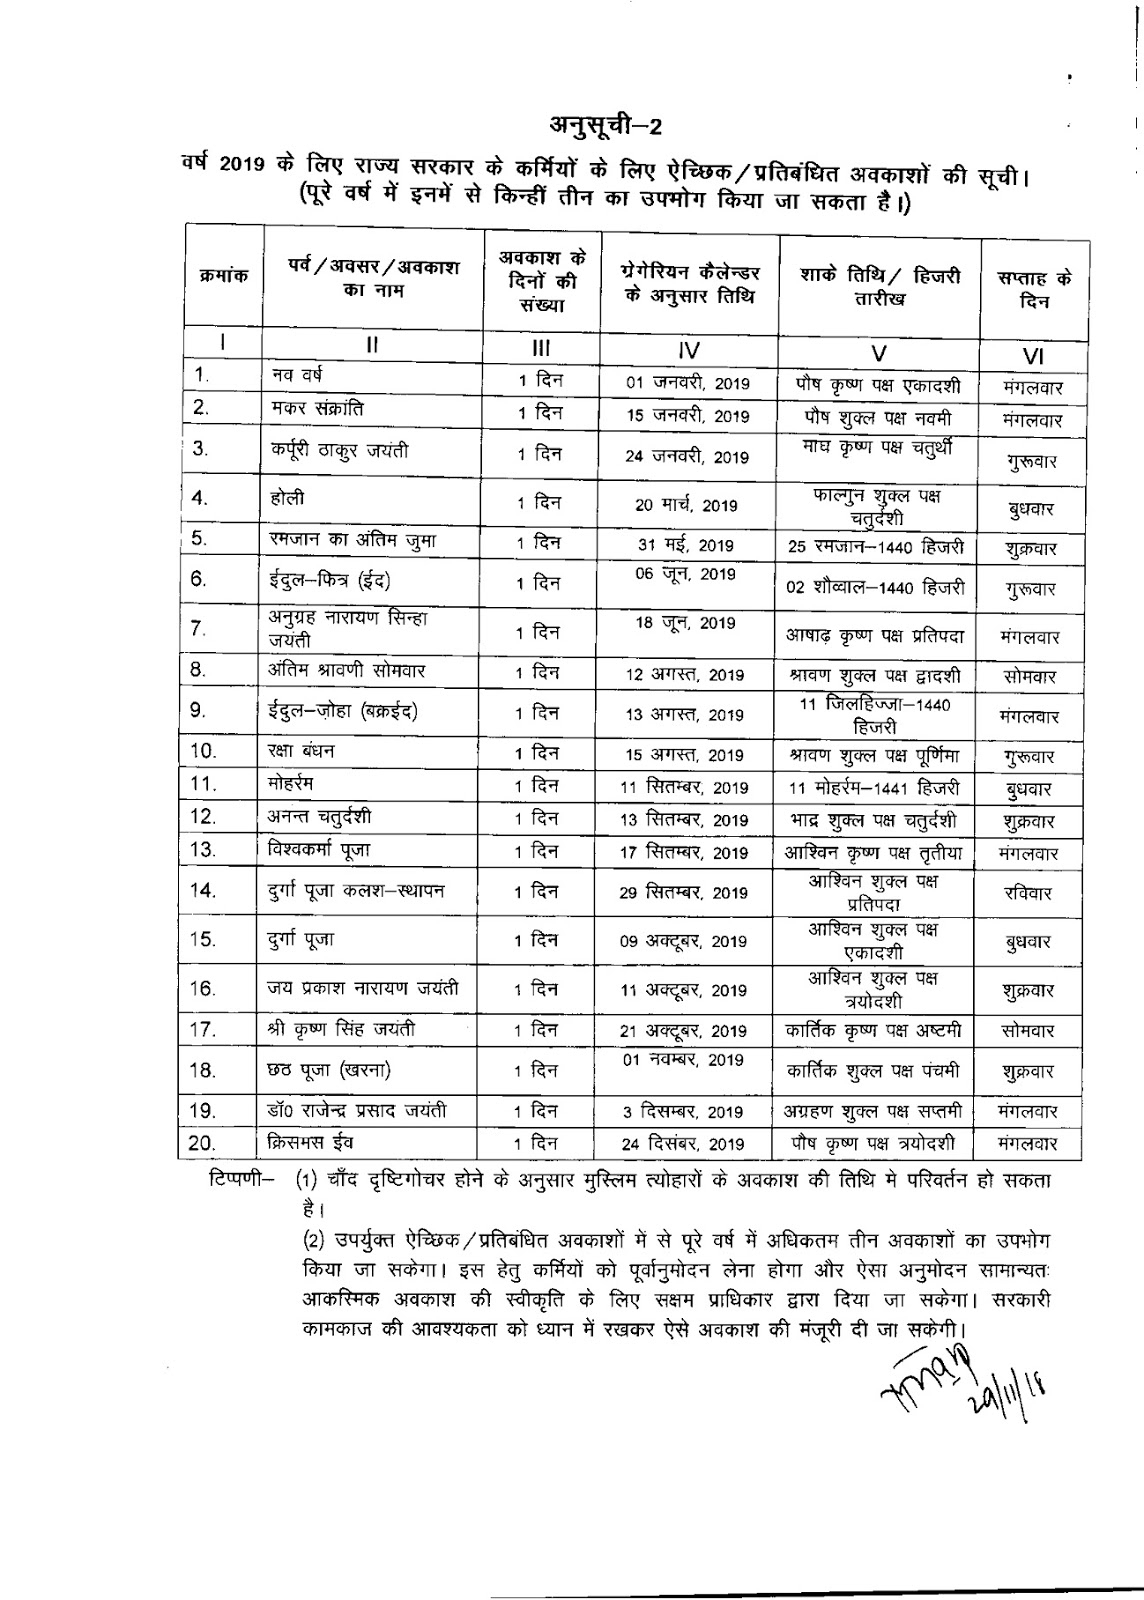 Bihar Sarkar Calendra 2020 | Calendar For Planning throughout 2018 Bihar Sarkar Calendar